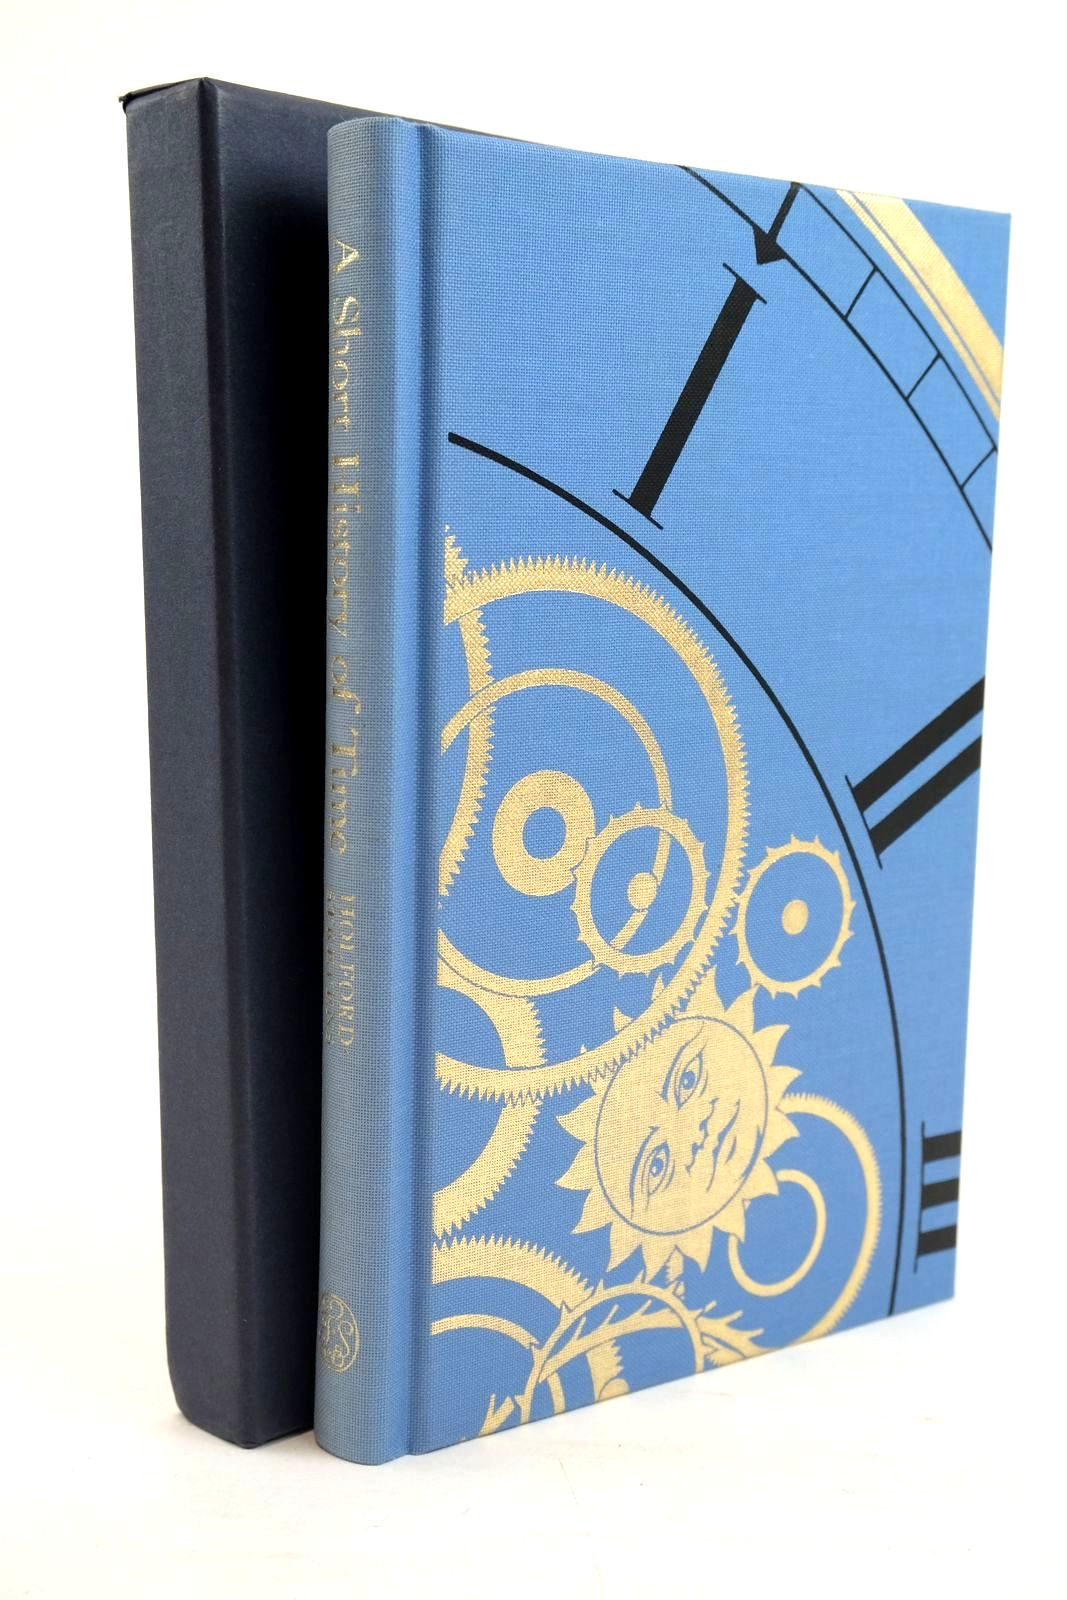 Photo of A SHORT HISTORY OF TIME written by Holford-Strevens, Leofranc published by Folio Society (STOCK CODE: 1319874)  for sale by Stella & Rose's Books